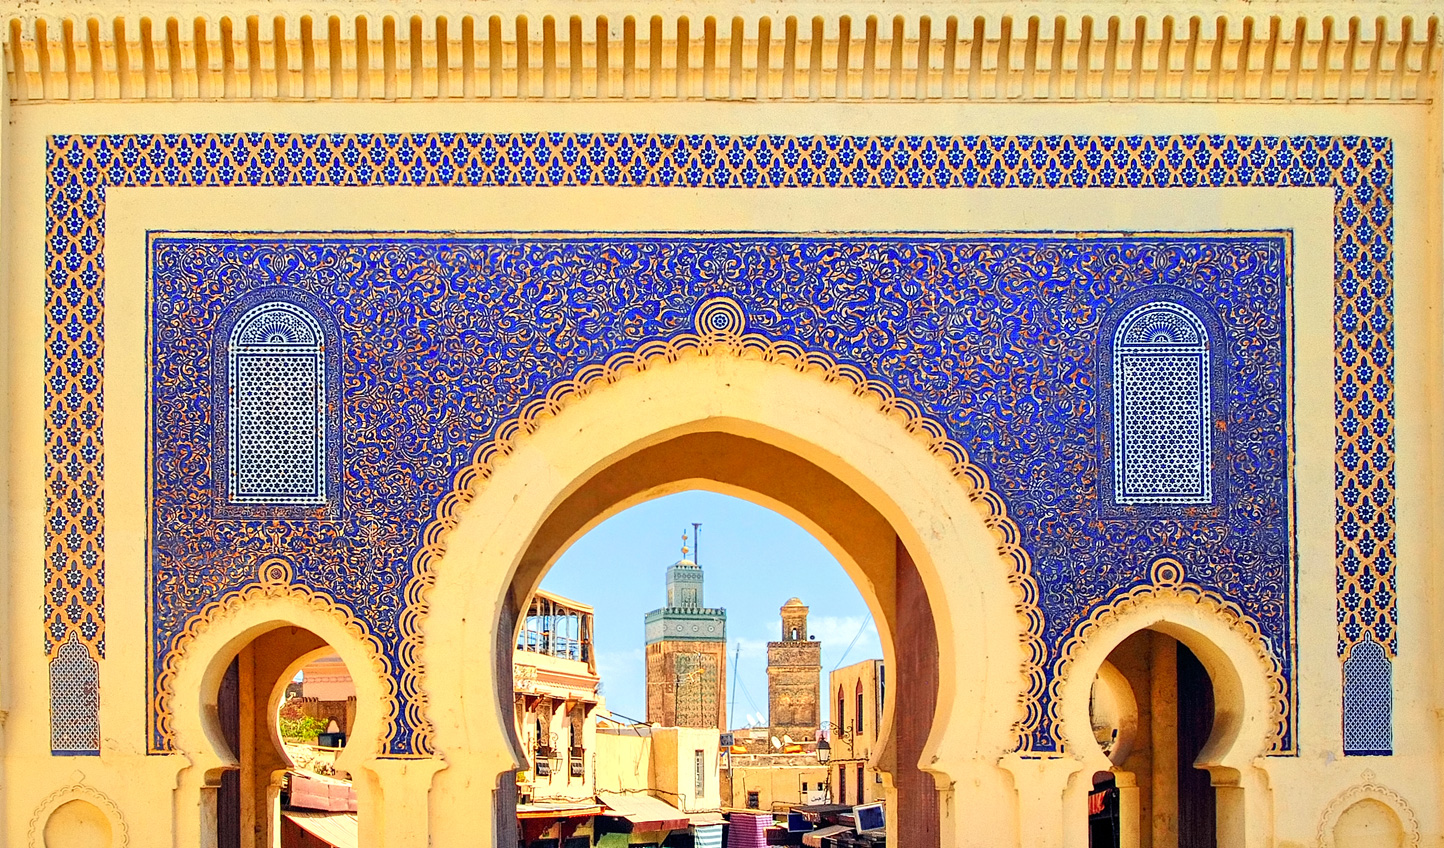 Navigate your way through Fez's winding medina streets alongside a private guide